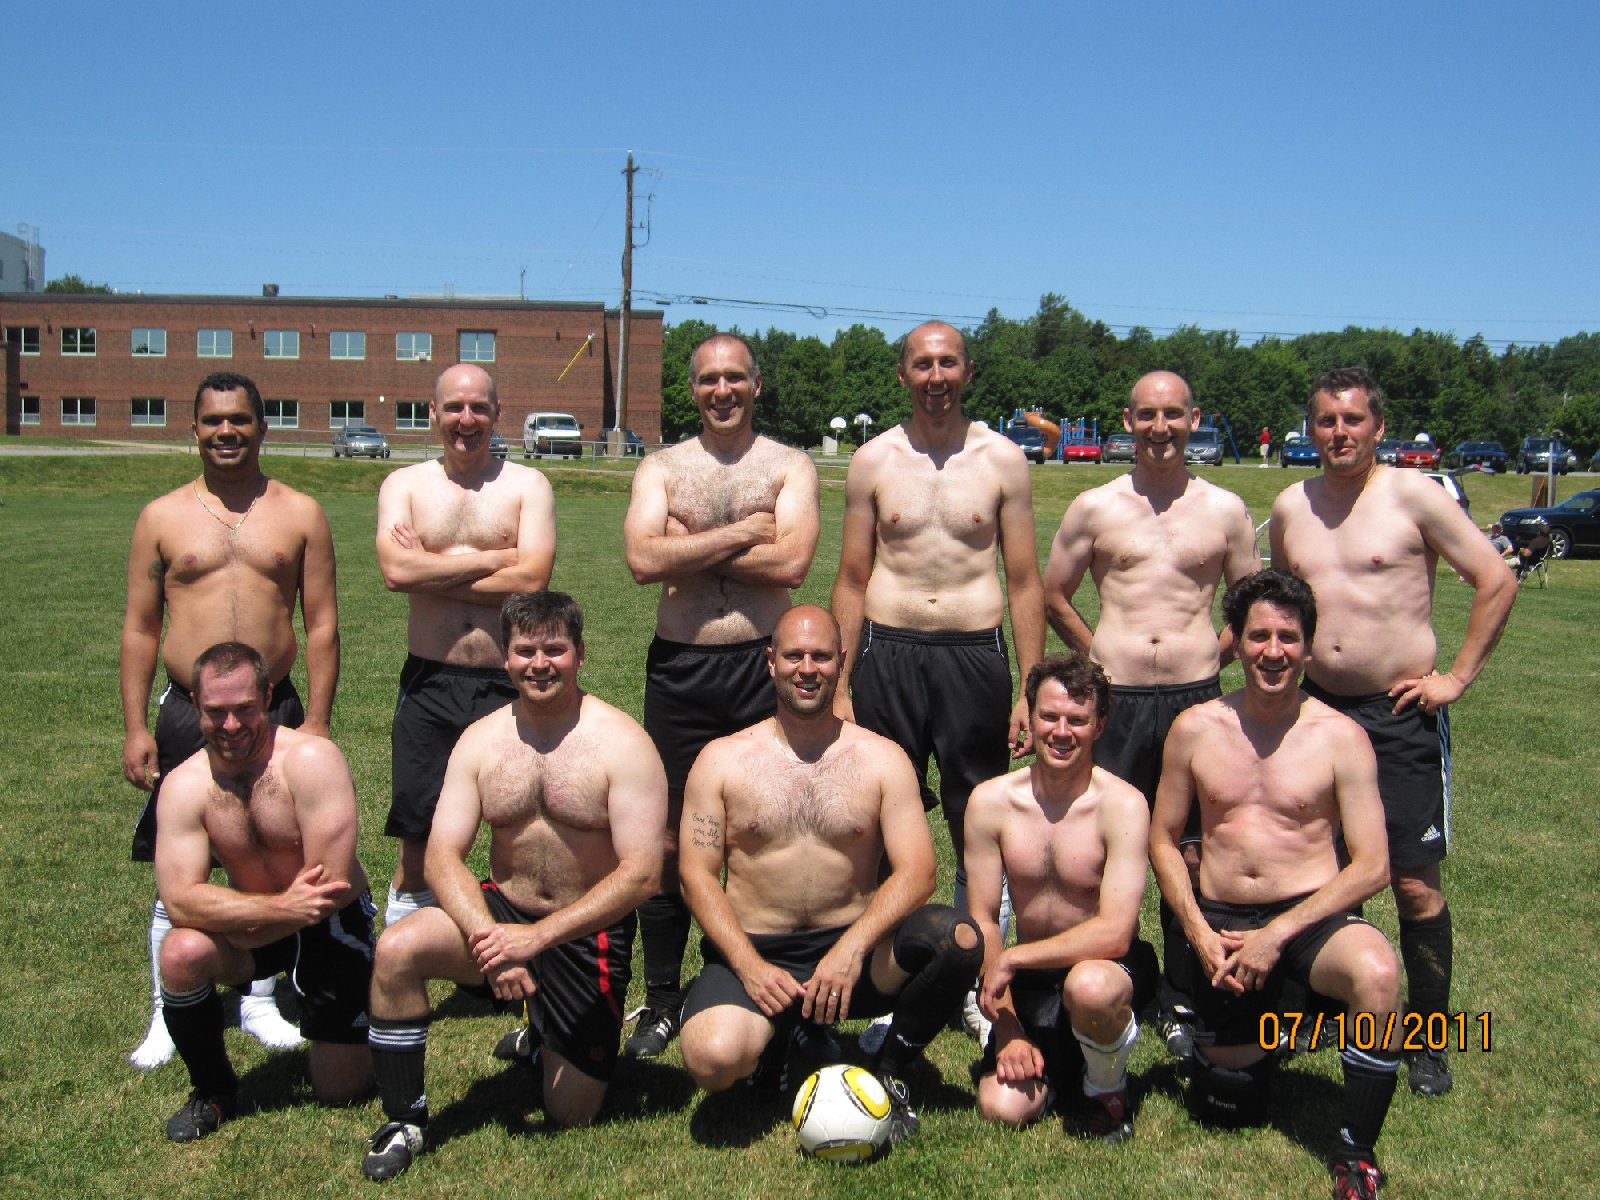 Old Boys' Soccer Club 2010 (Bridgewater Tournament Over 35's)